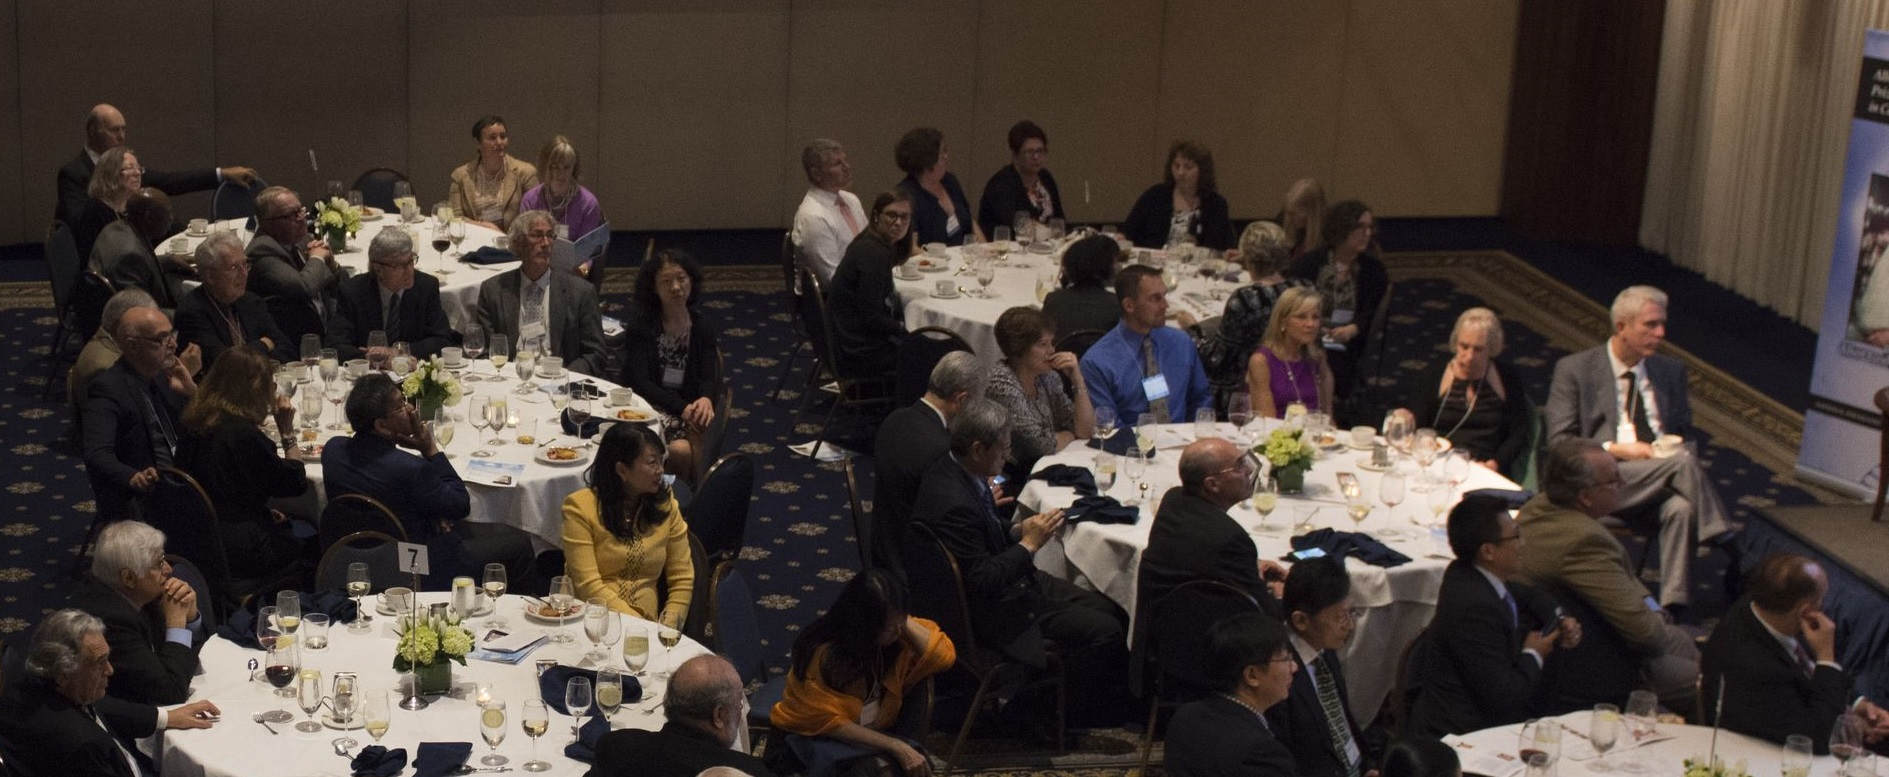 Some of our distinguished guests appreciating the dinner program